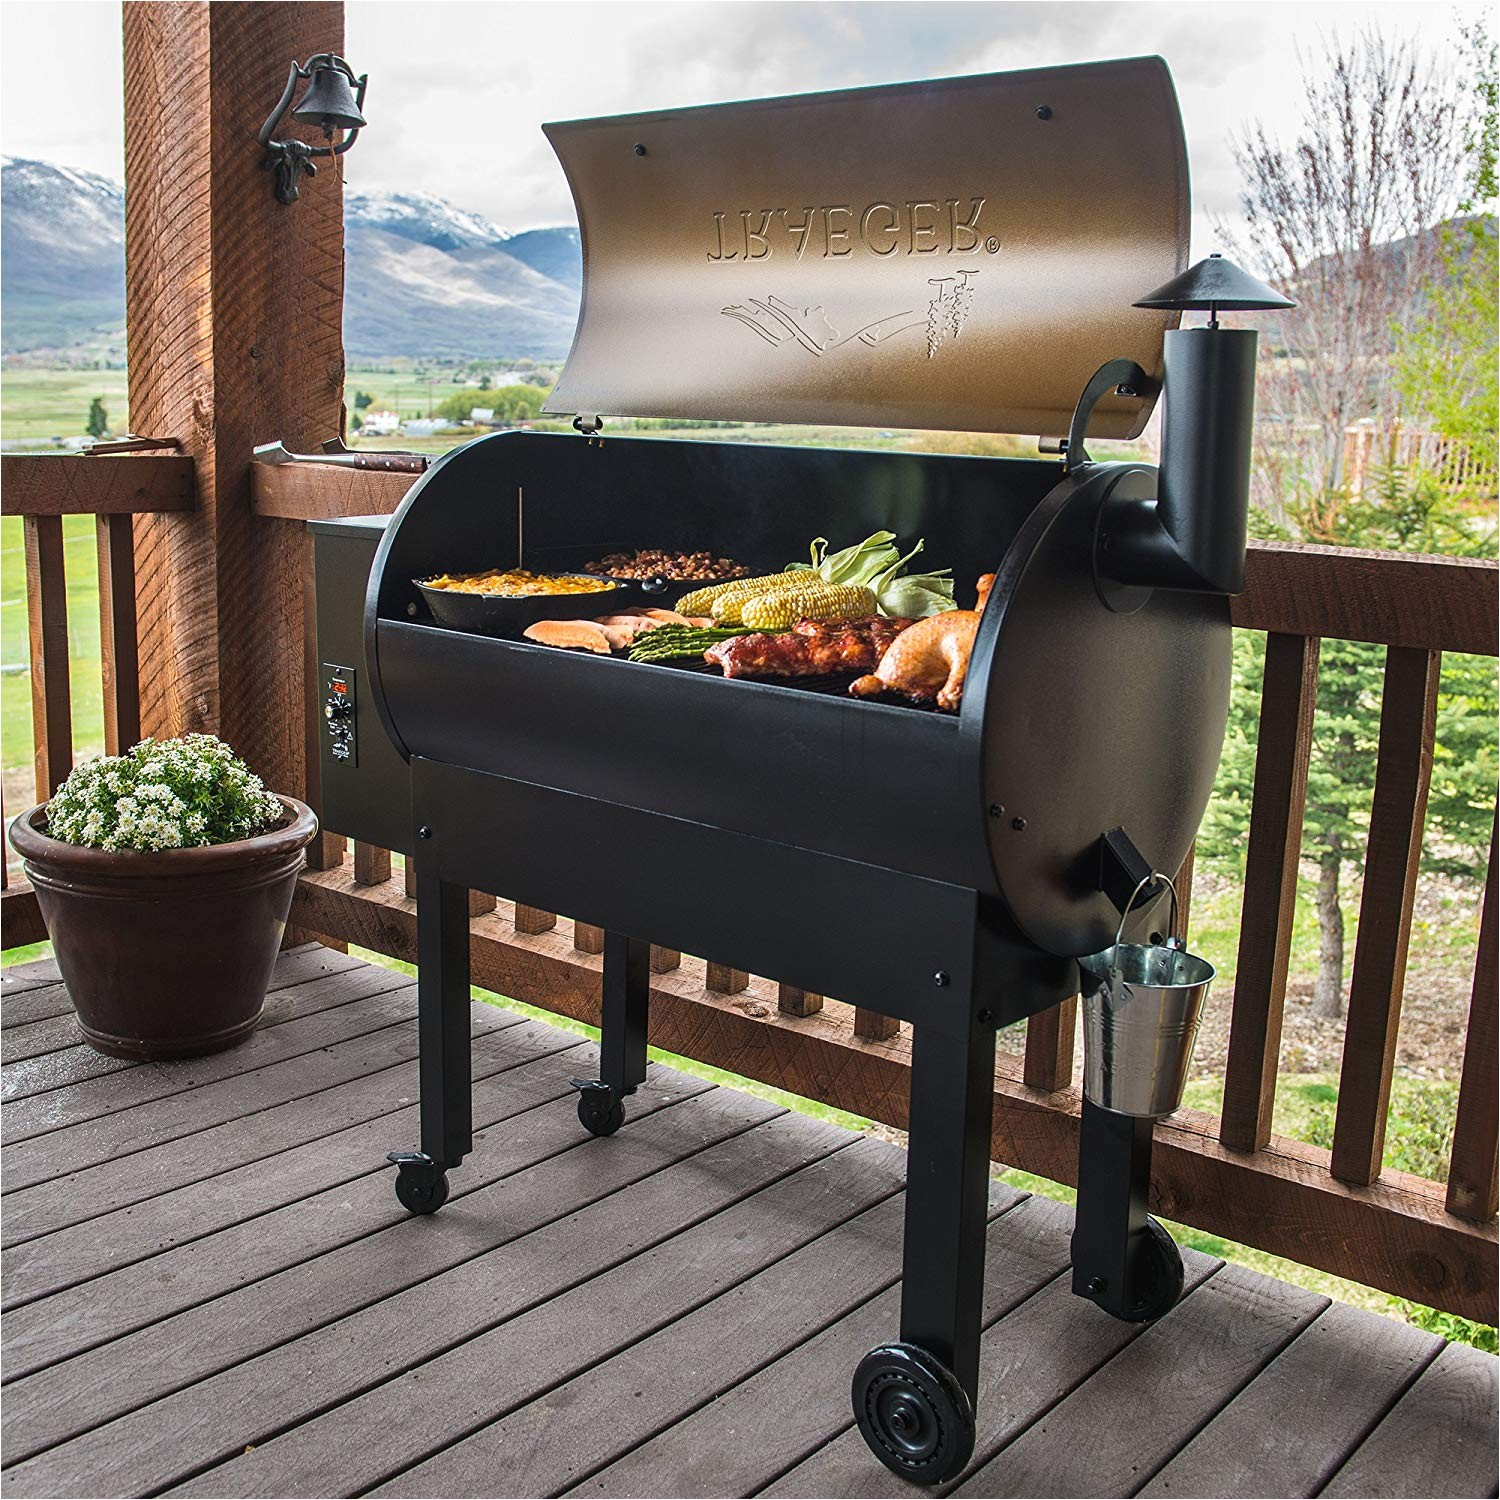 Traeger Renegade Elite Price Traeger Renegade Elite Grill Reviews Grilling Your Way to